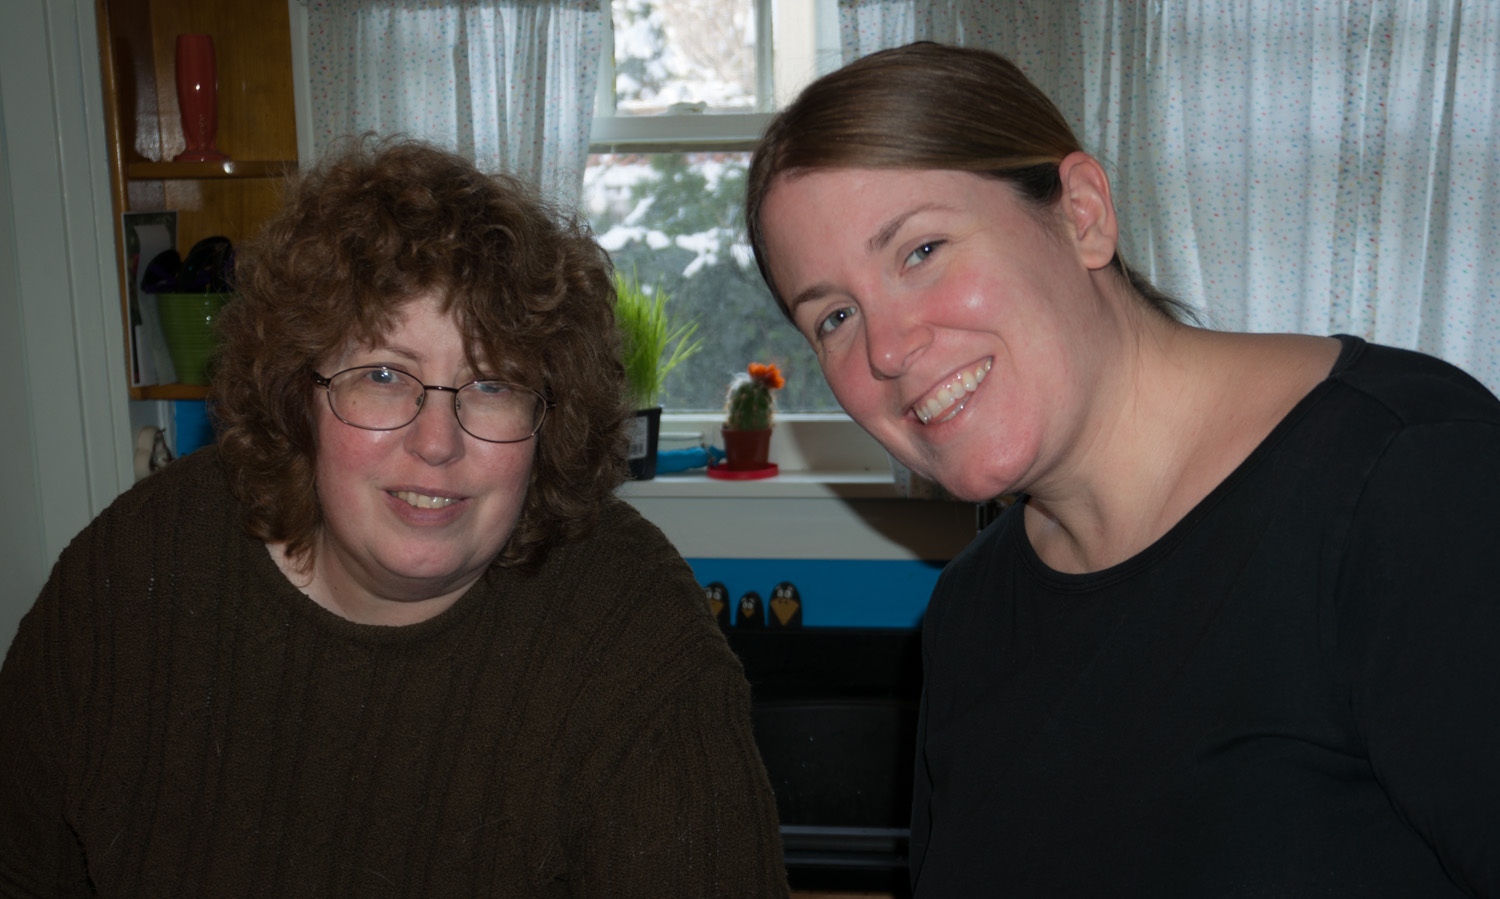 Aunt Kathy and Beth smile for the camera.